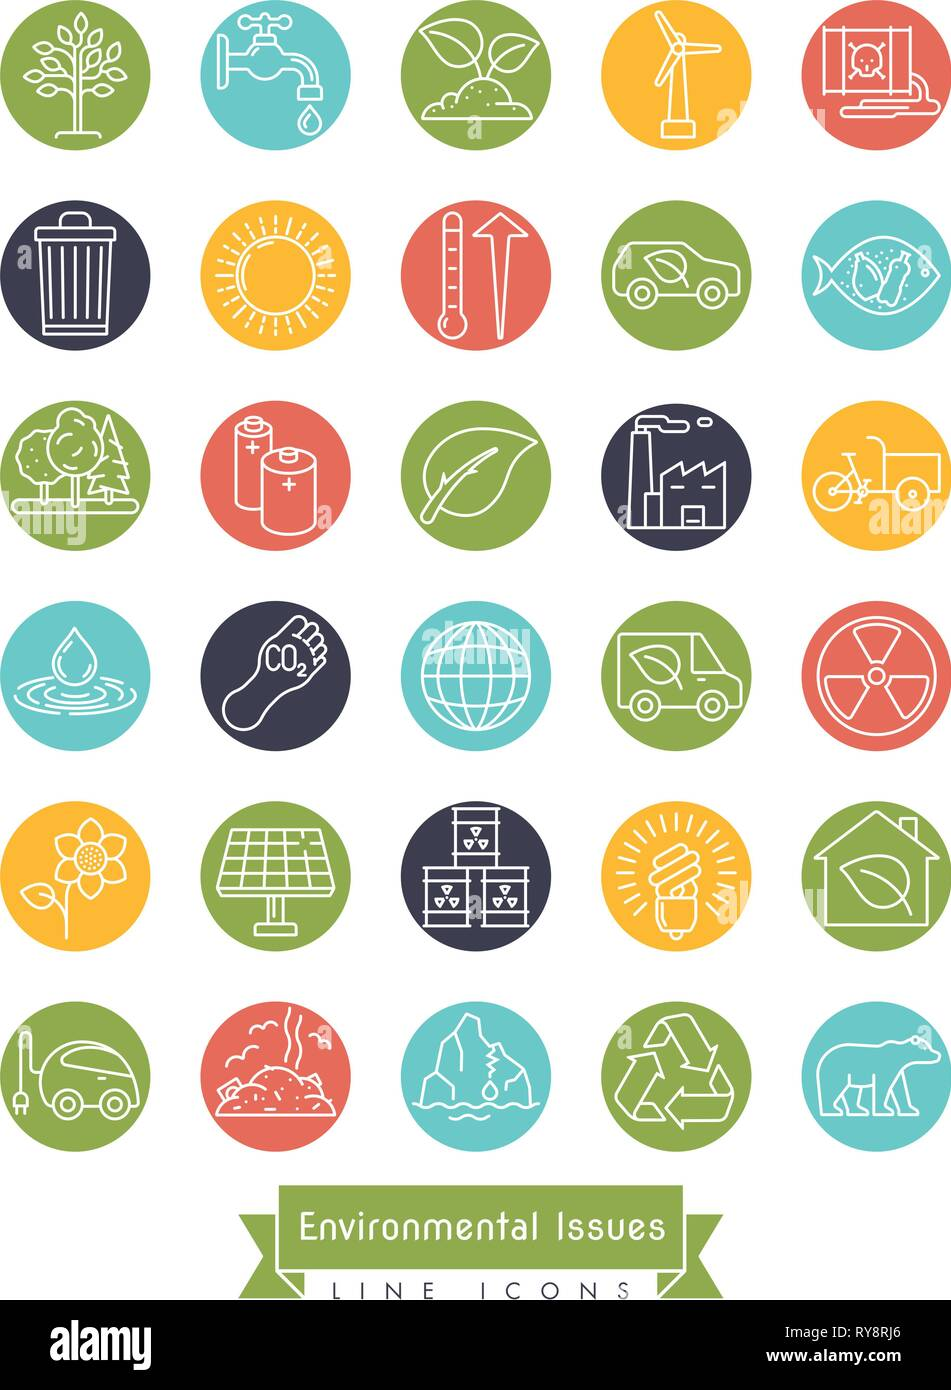 Collection of Environment and Climate related vector line icons in colored circles. Sustainability, global warming and polution symbols. - Stock Vector